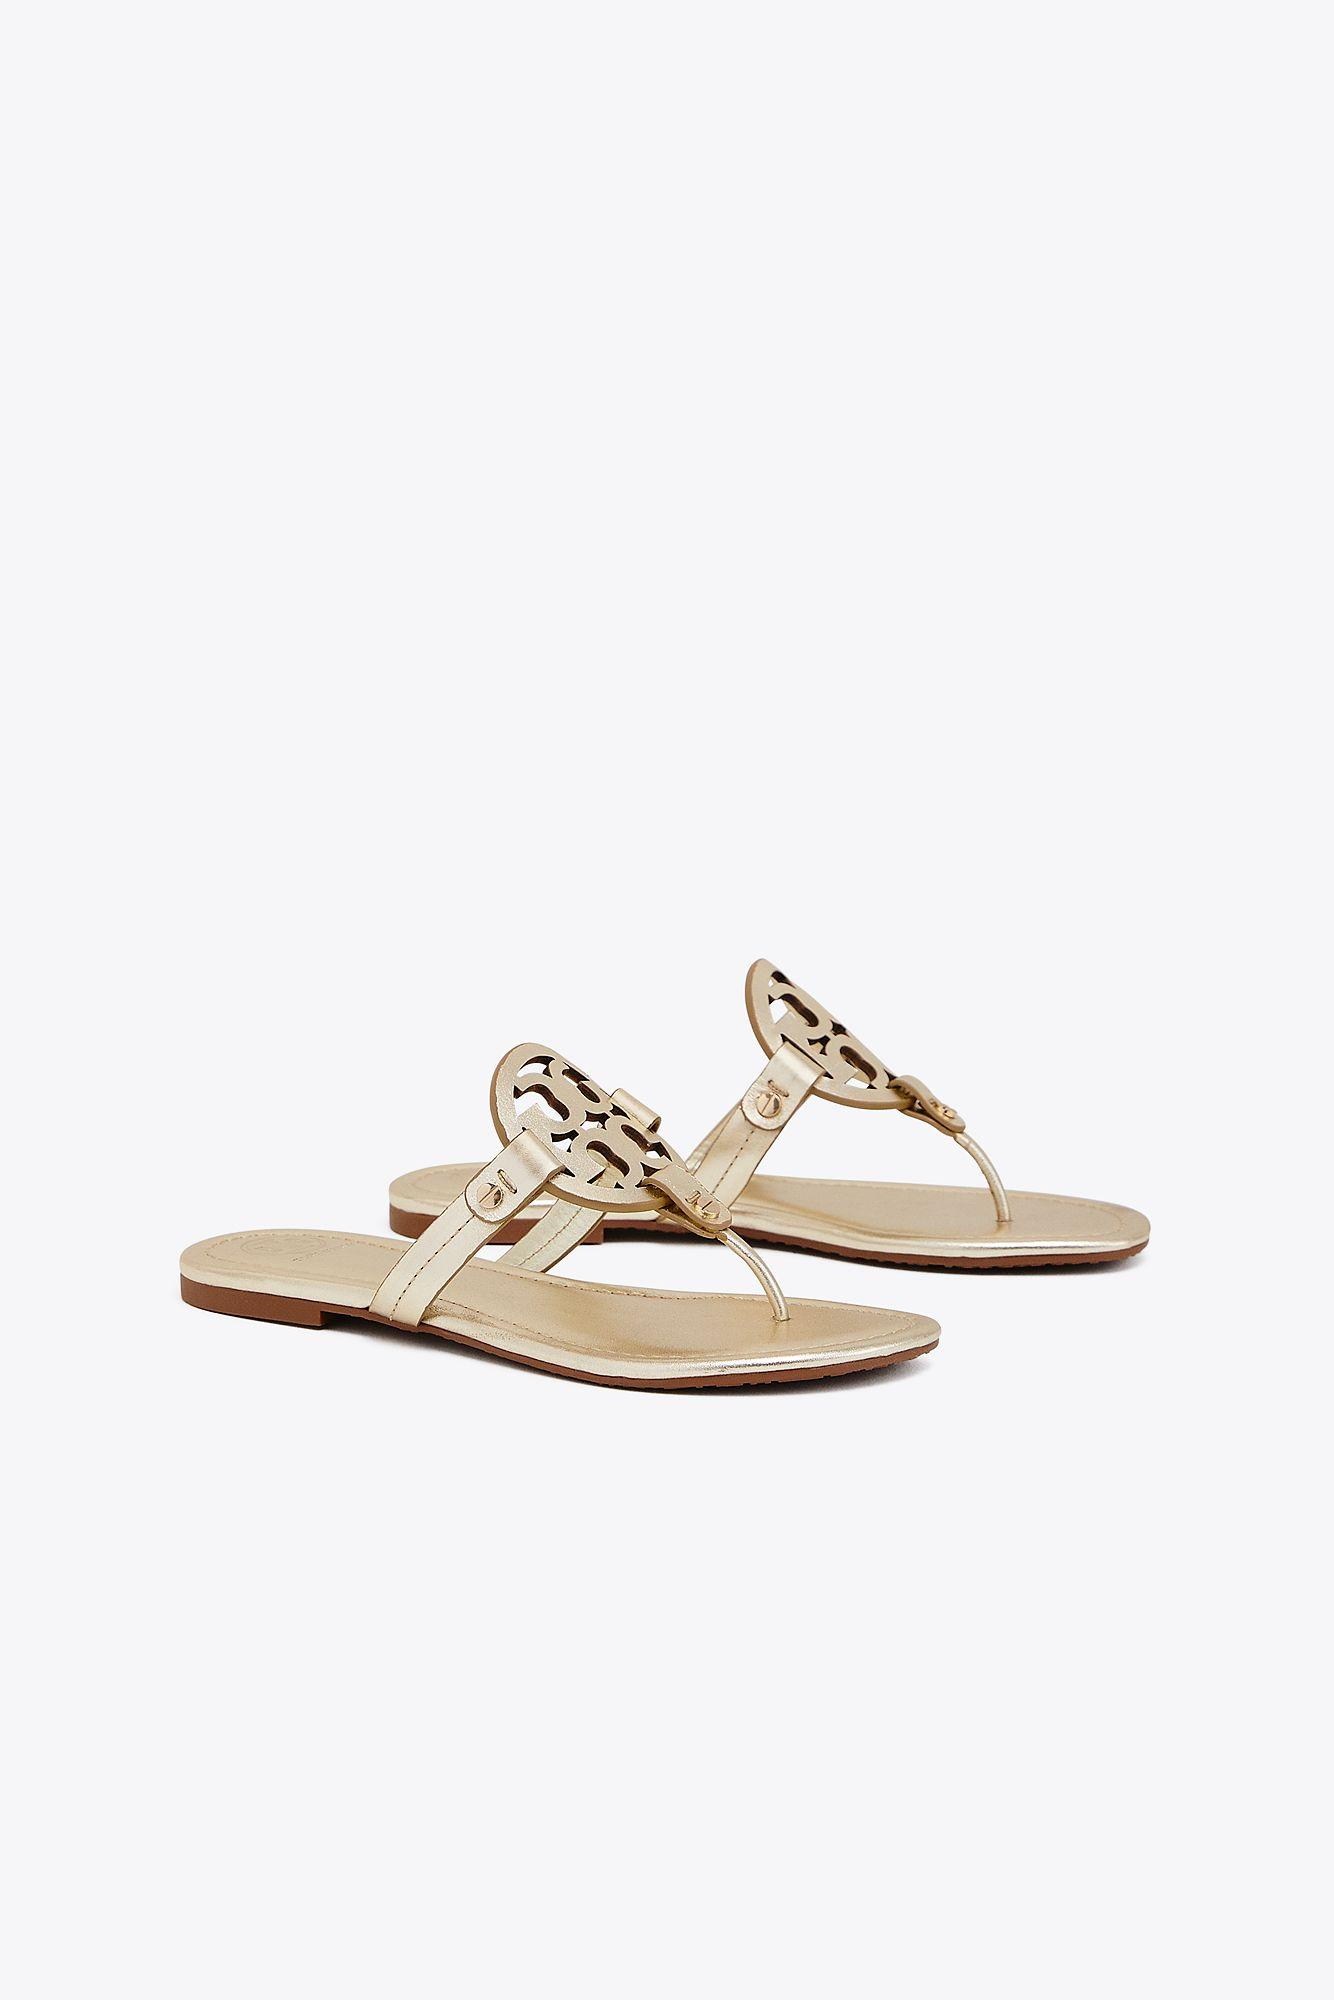 631eee606 Tory Burch Miller Leather Logo Sandal in Metallic - Save 14% - Lyst